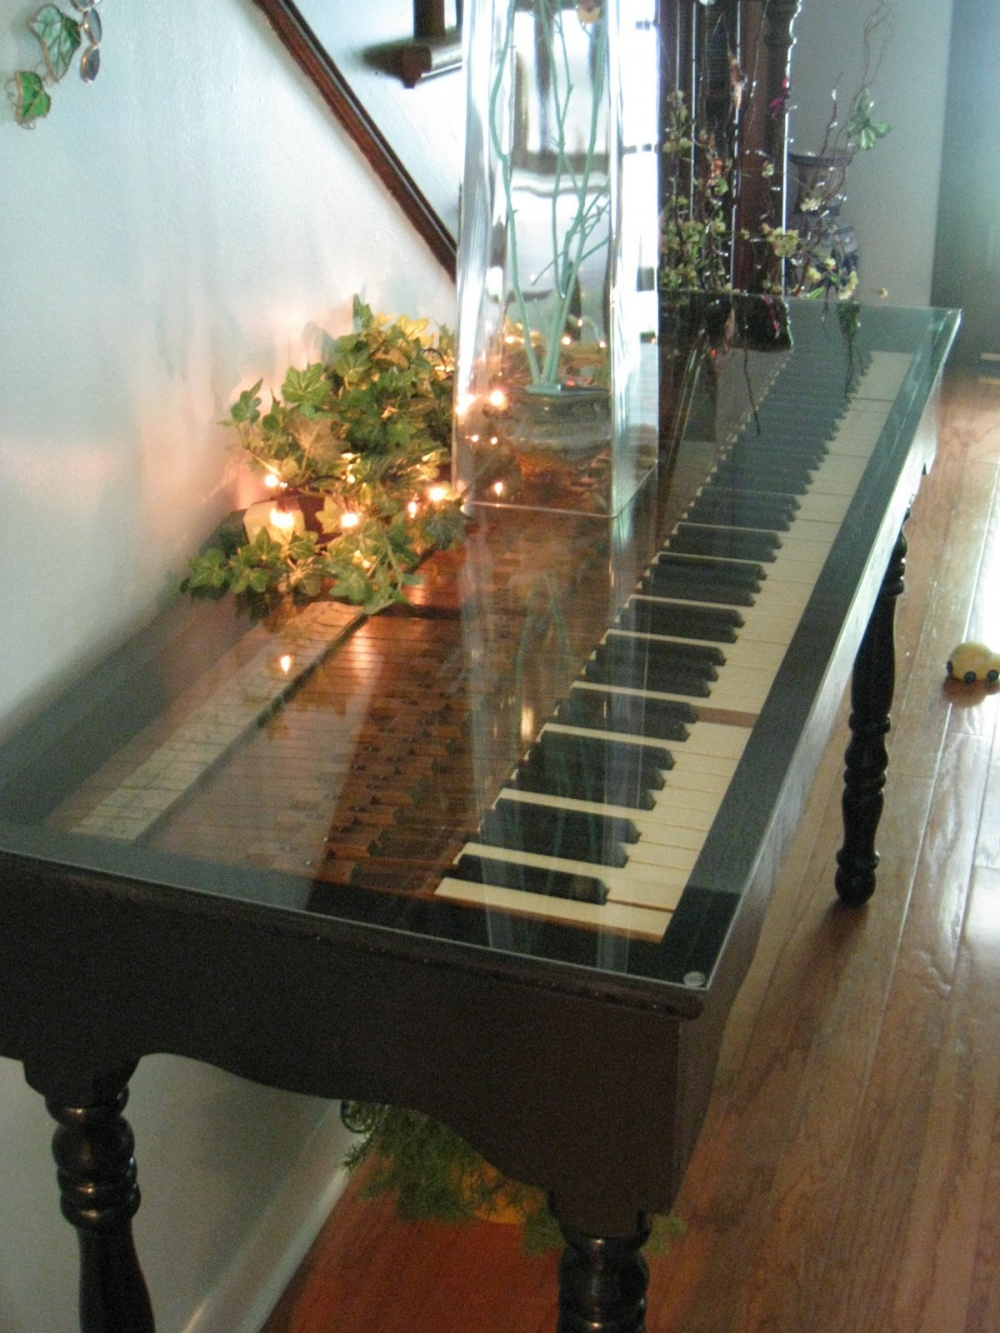 Old piano brought to life again